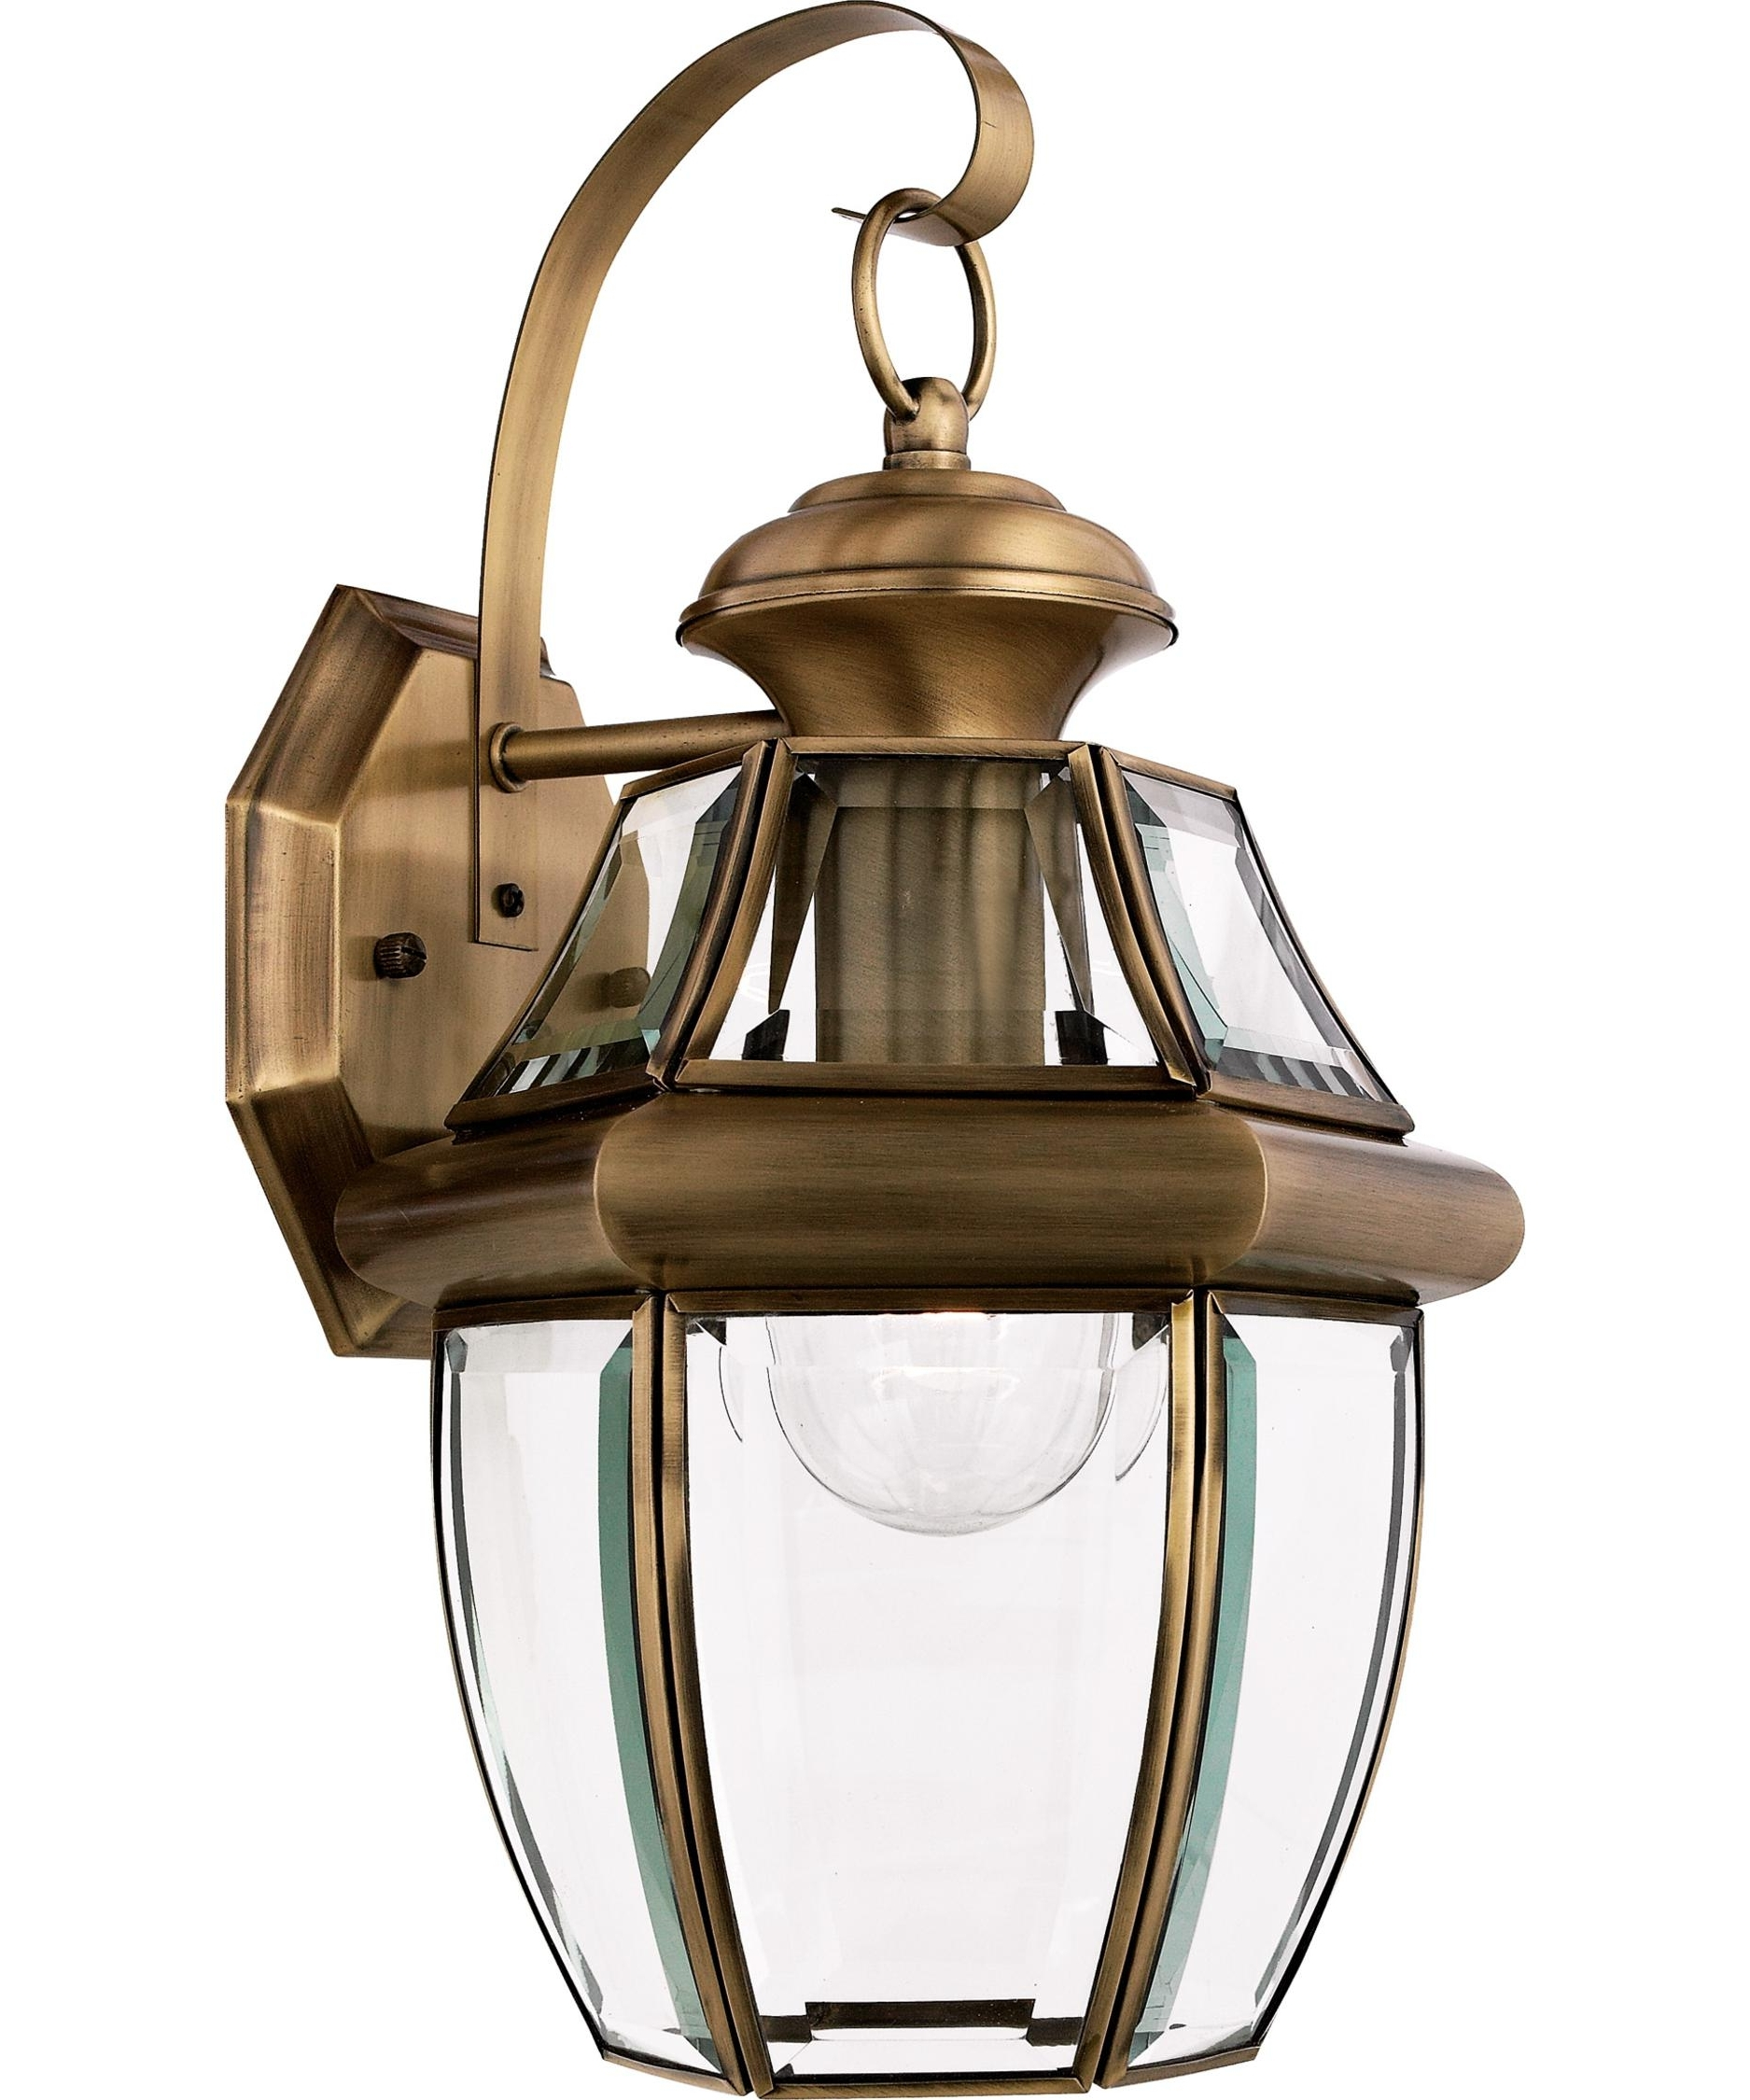 Quoizel Outdoor Wall Lighting Within Latest Quoizel Ny8316 Newbury 9 Inch Wide 1 Light Outdoor Wall Light (Gallery 9 of 20)